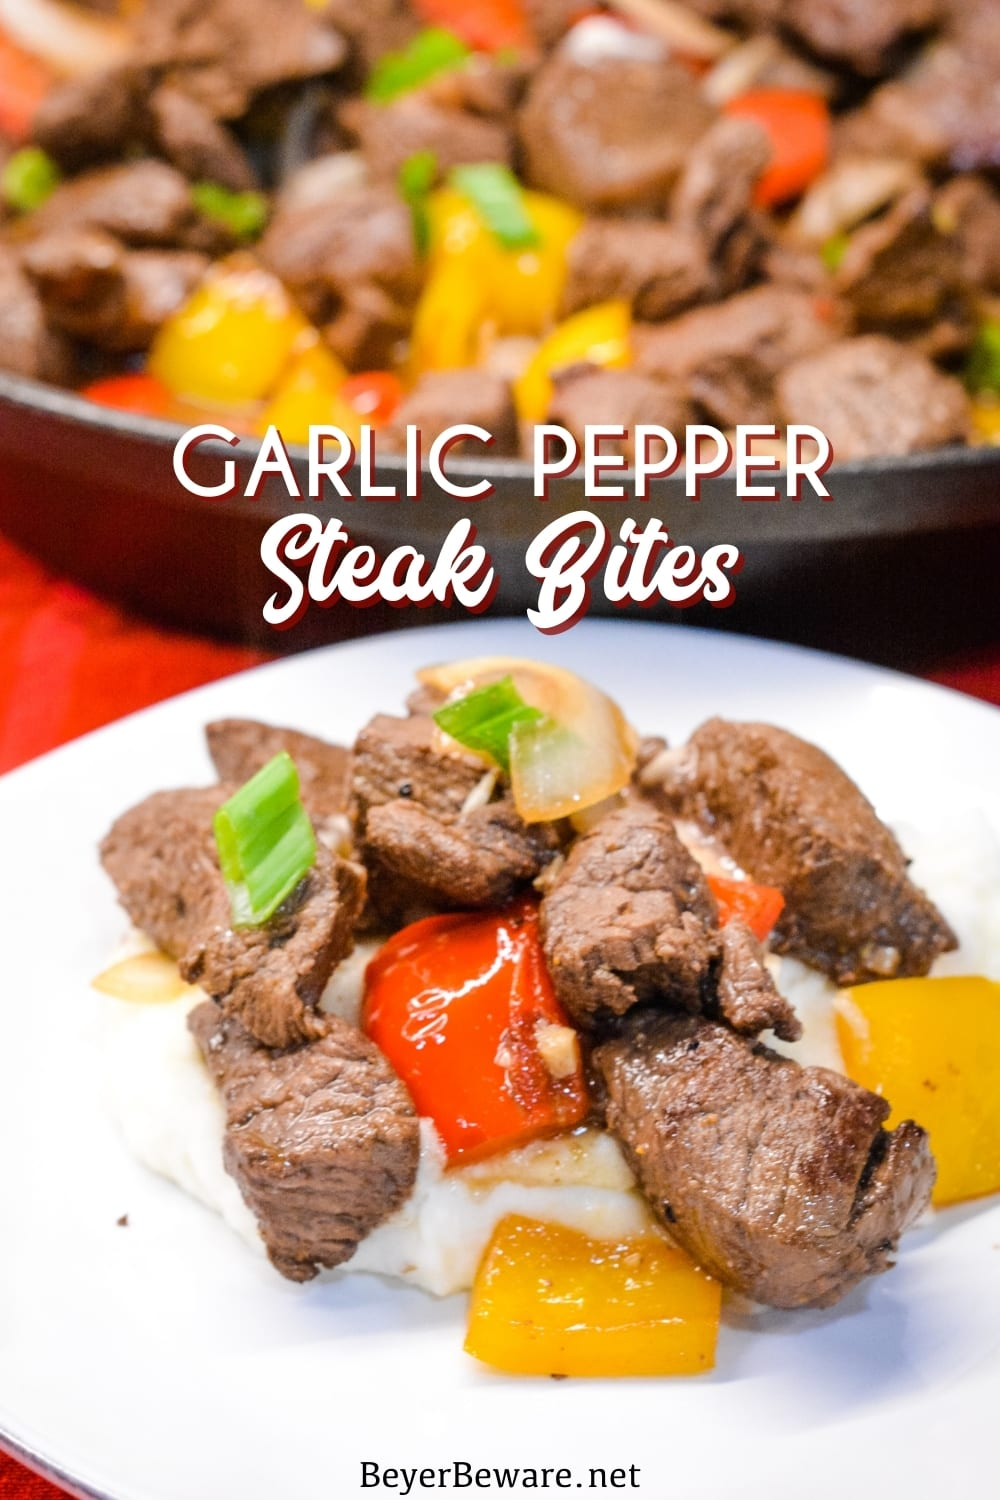 Garlic pepper steak bites recipe is an easy cast iron steak skillet meal made with an easy marinated sirloin steak, garlic, onions, and bell peppers served over mashed potatoes or rice.